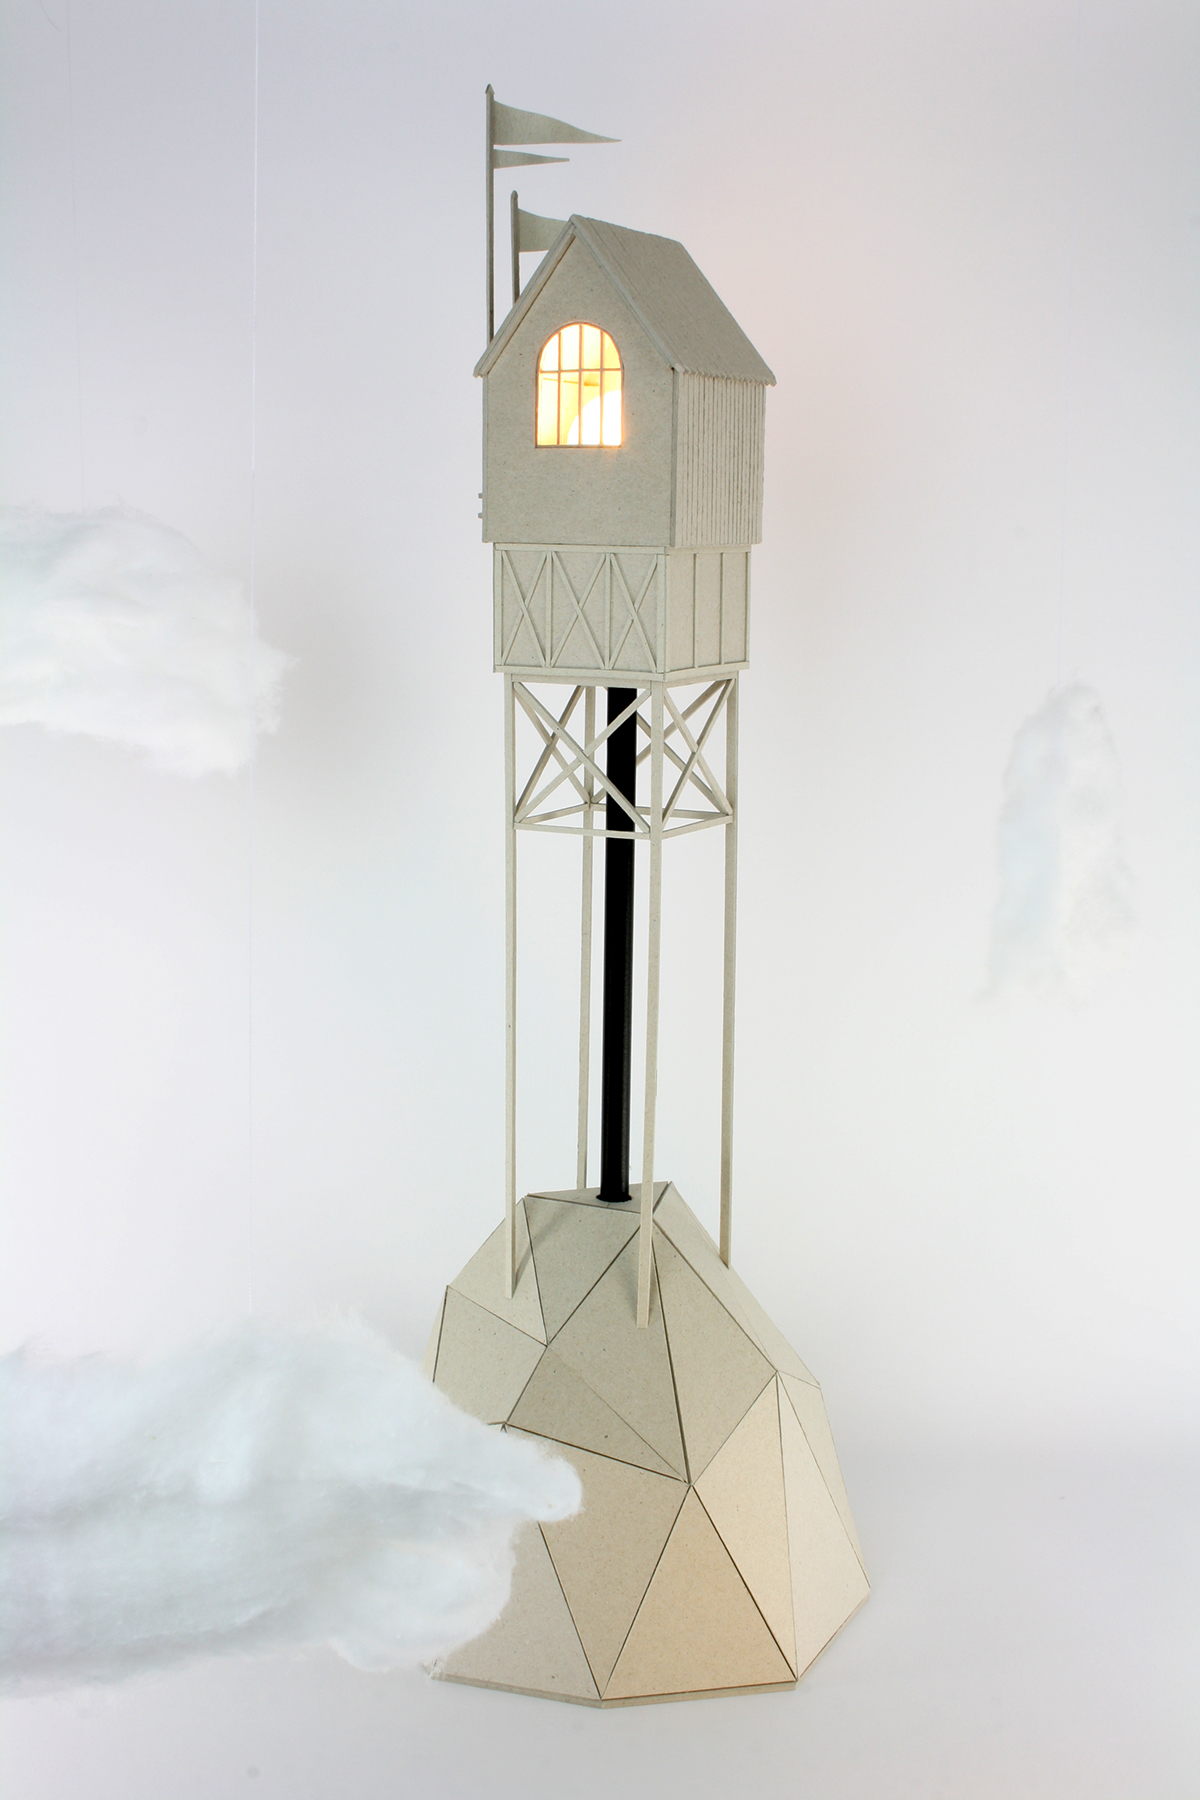 cardboard lamps model Miniature mountain house Island floating lowpoly Low Poly fantasy